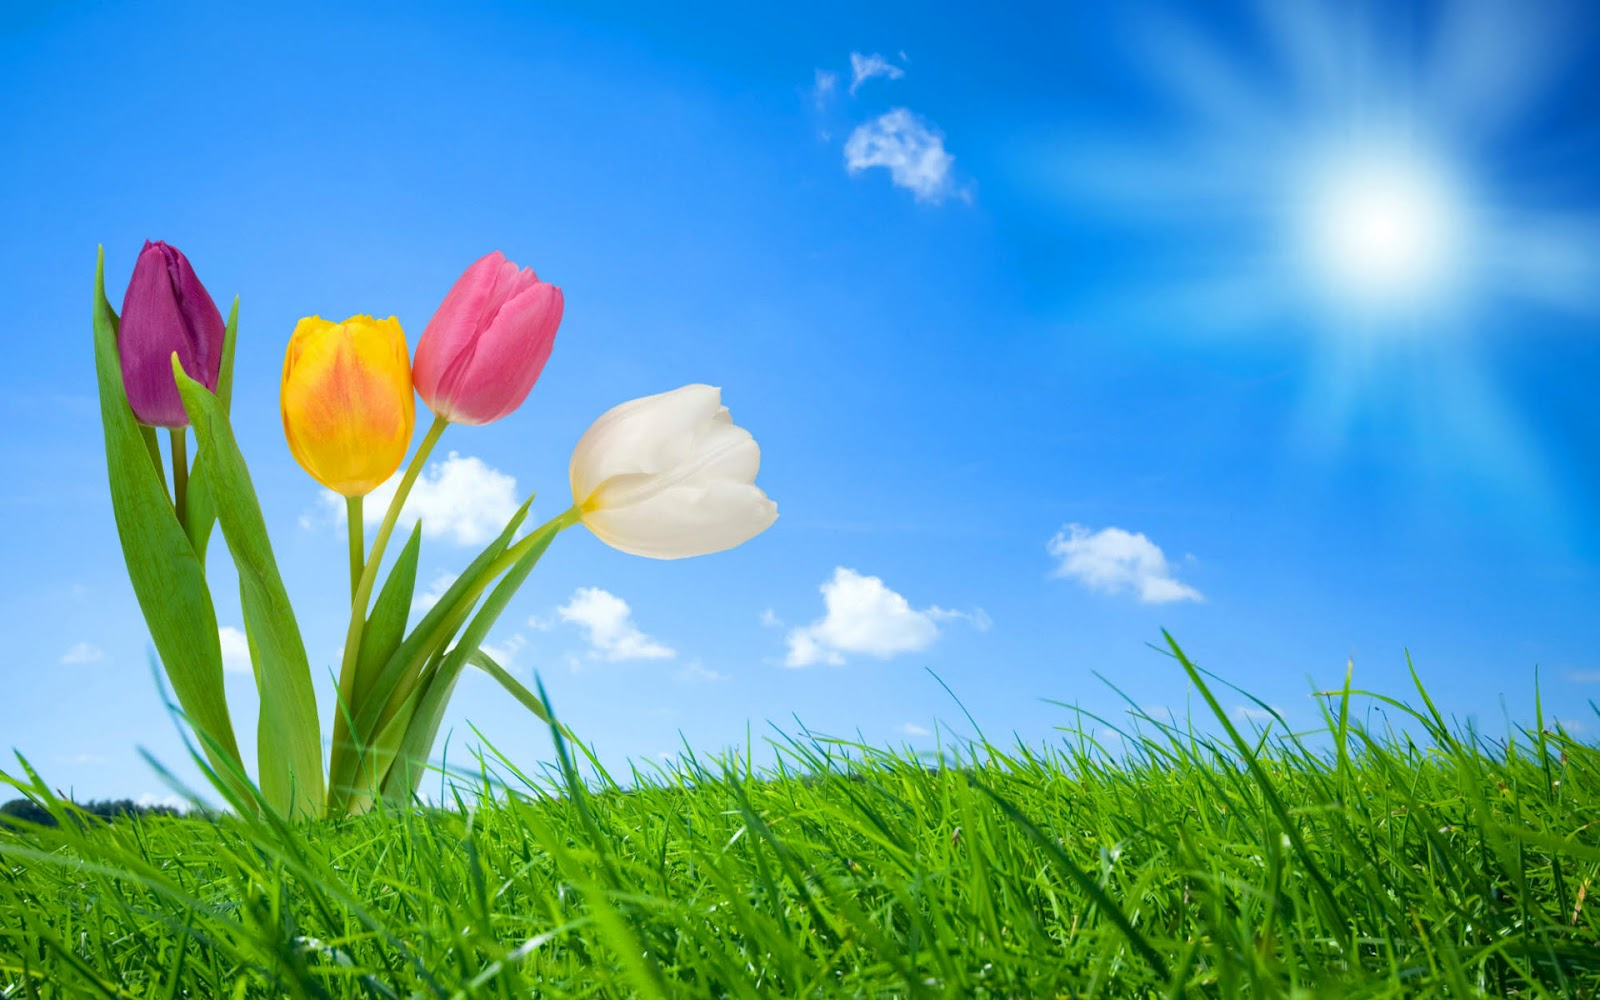 High Resolution Nature Colorful Flowers With Blue Sky And Green Garden 3D Fantasy Wallpapers